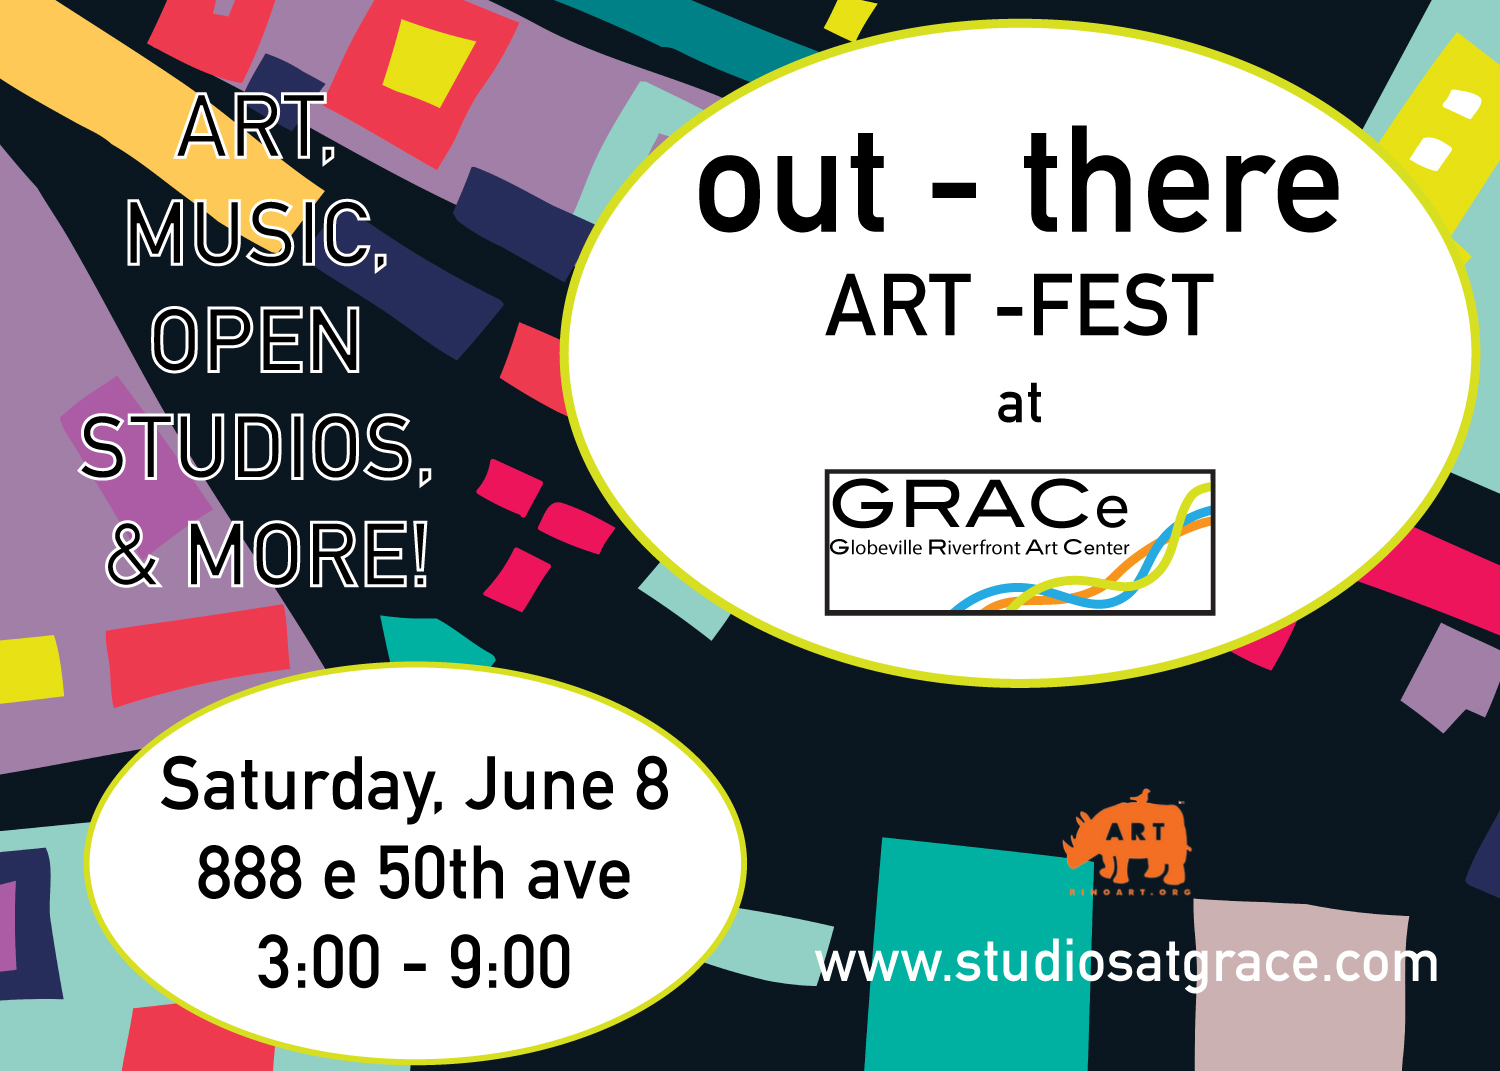 Save June 8th for the out there art fest at GRACe, Tim having a liquidation sale